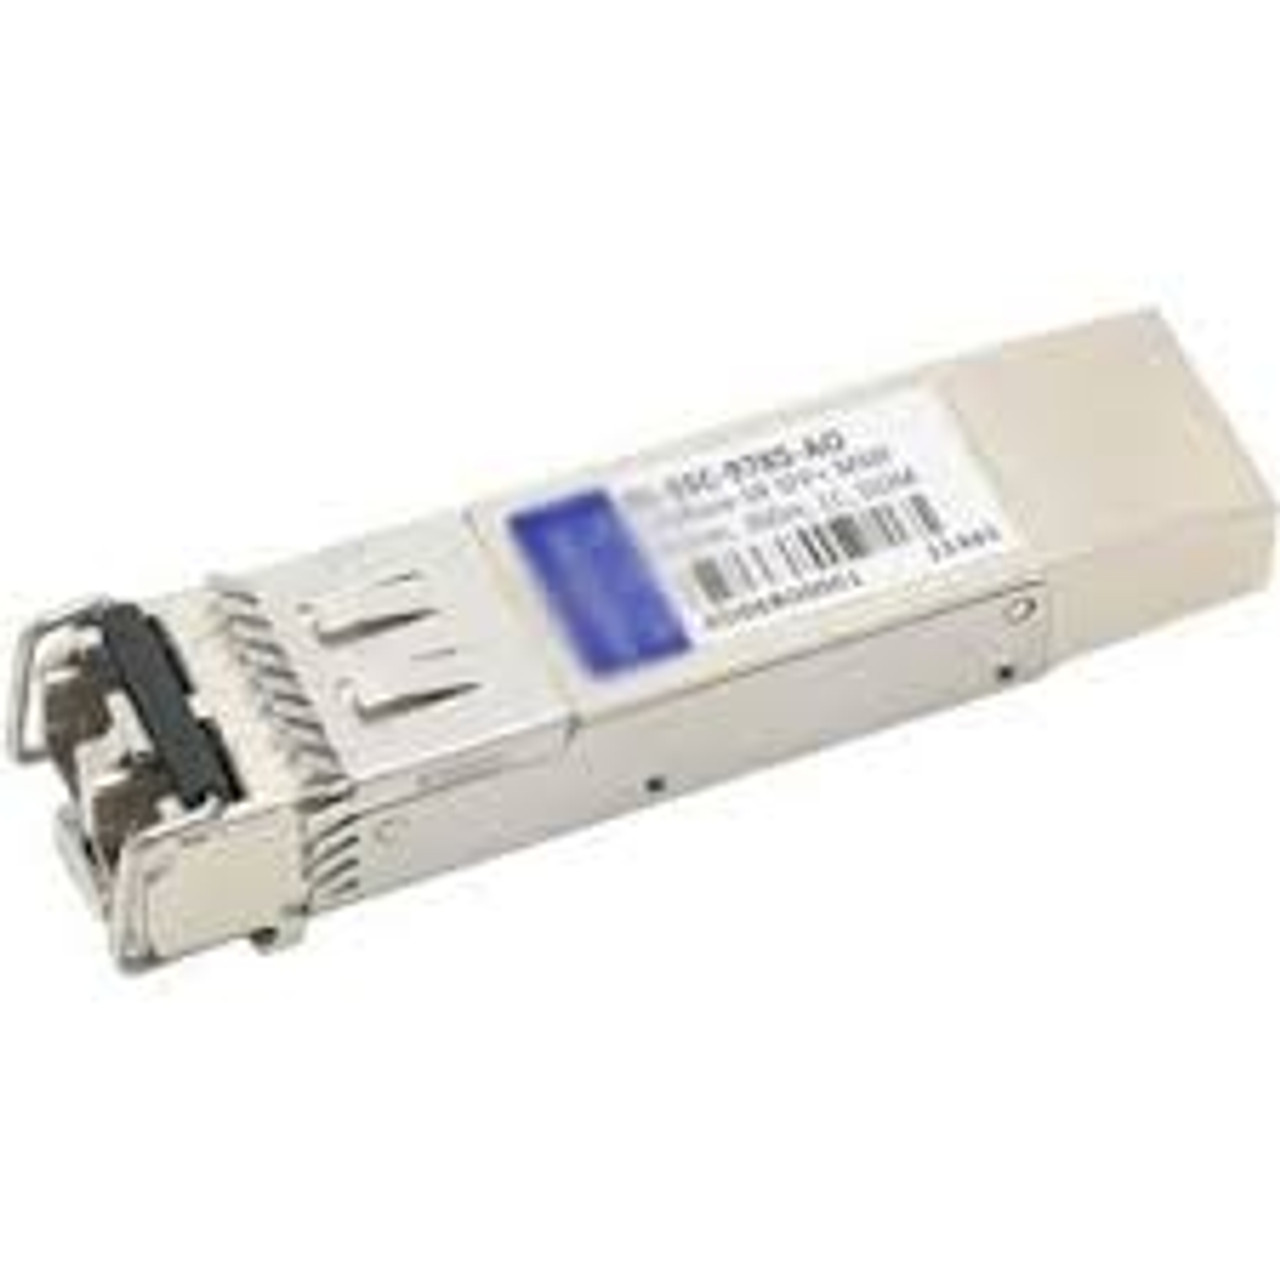 1GB-LX SFP LONG HAUL FIBER MODULE SINGLE-MODE NO CABLE